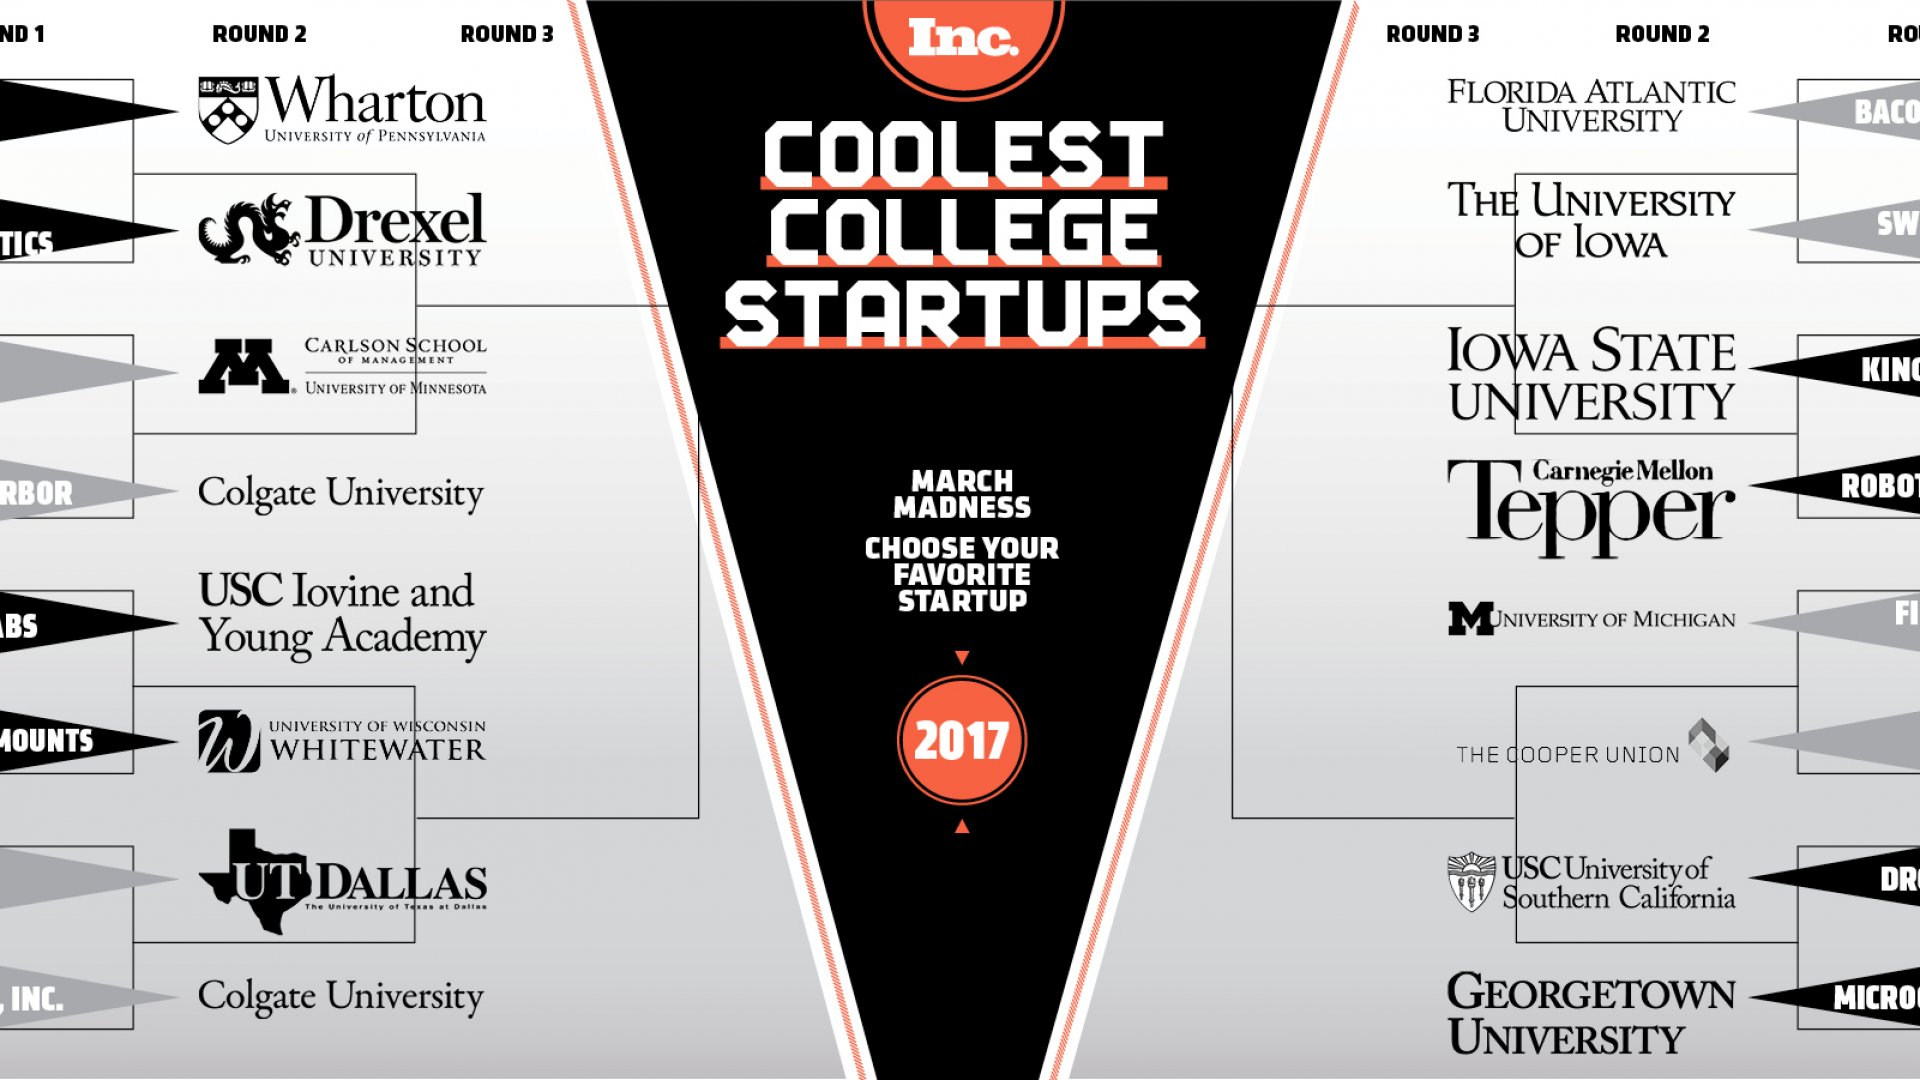 How to Vote for Your Favorite College Startup